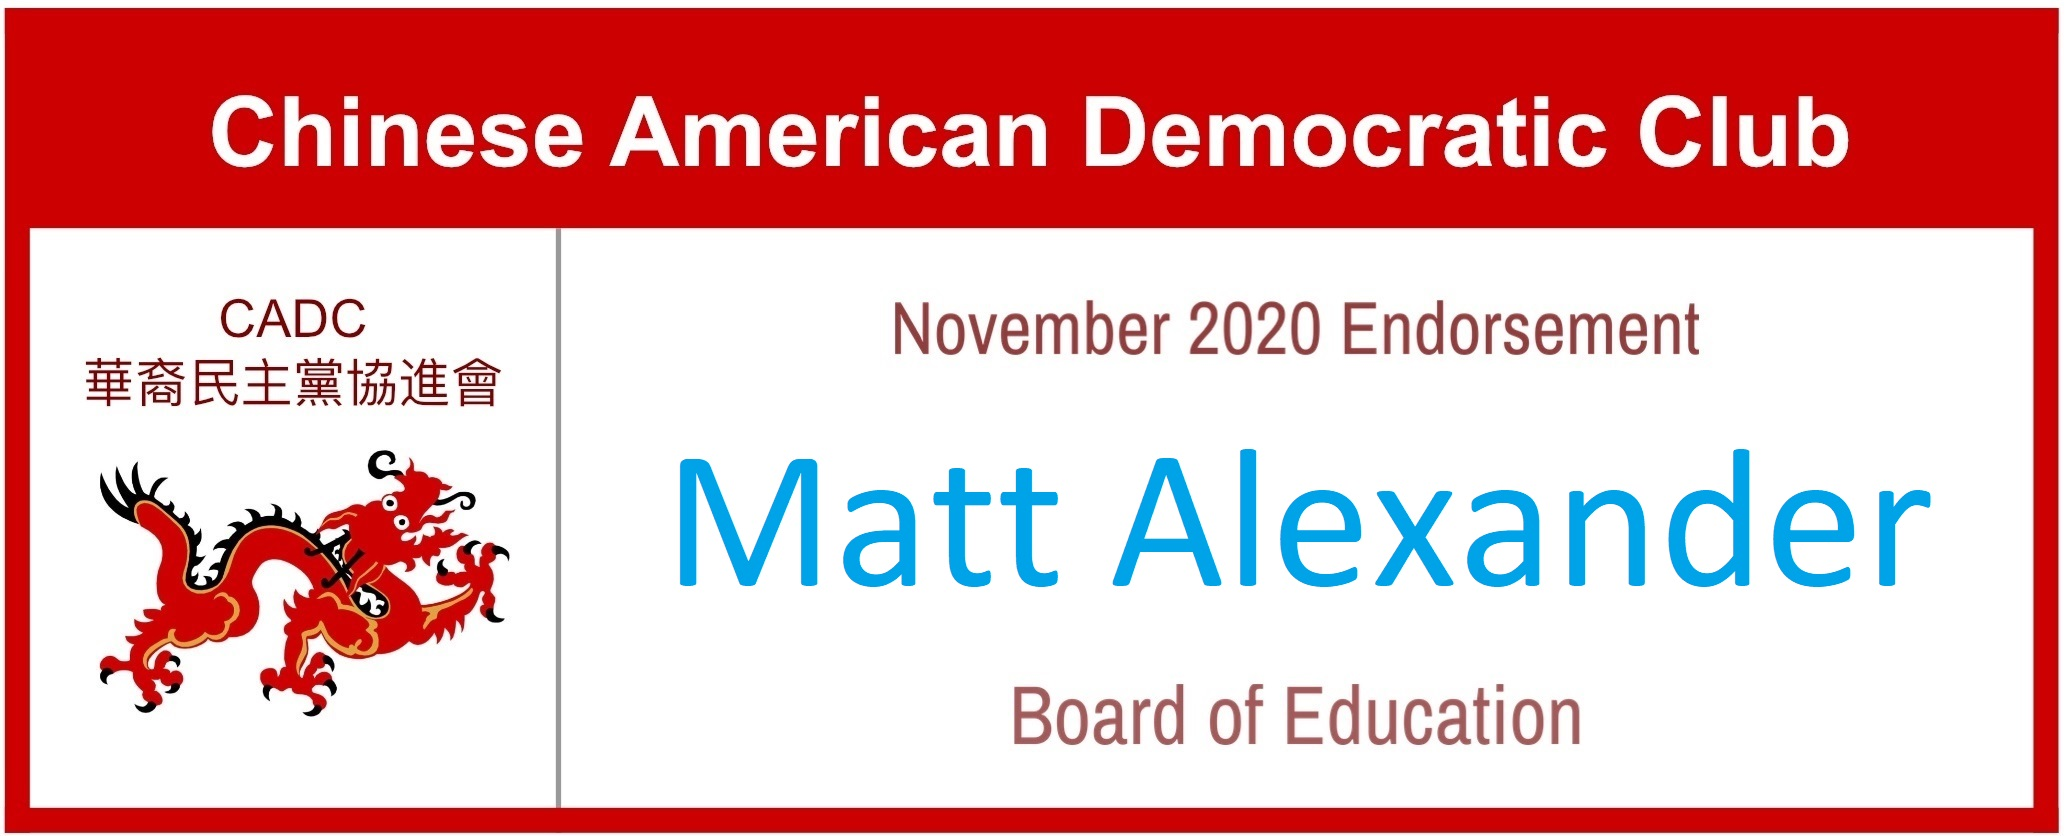 Matt Alexander for Board of Education - CADC Endorsement November 2020